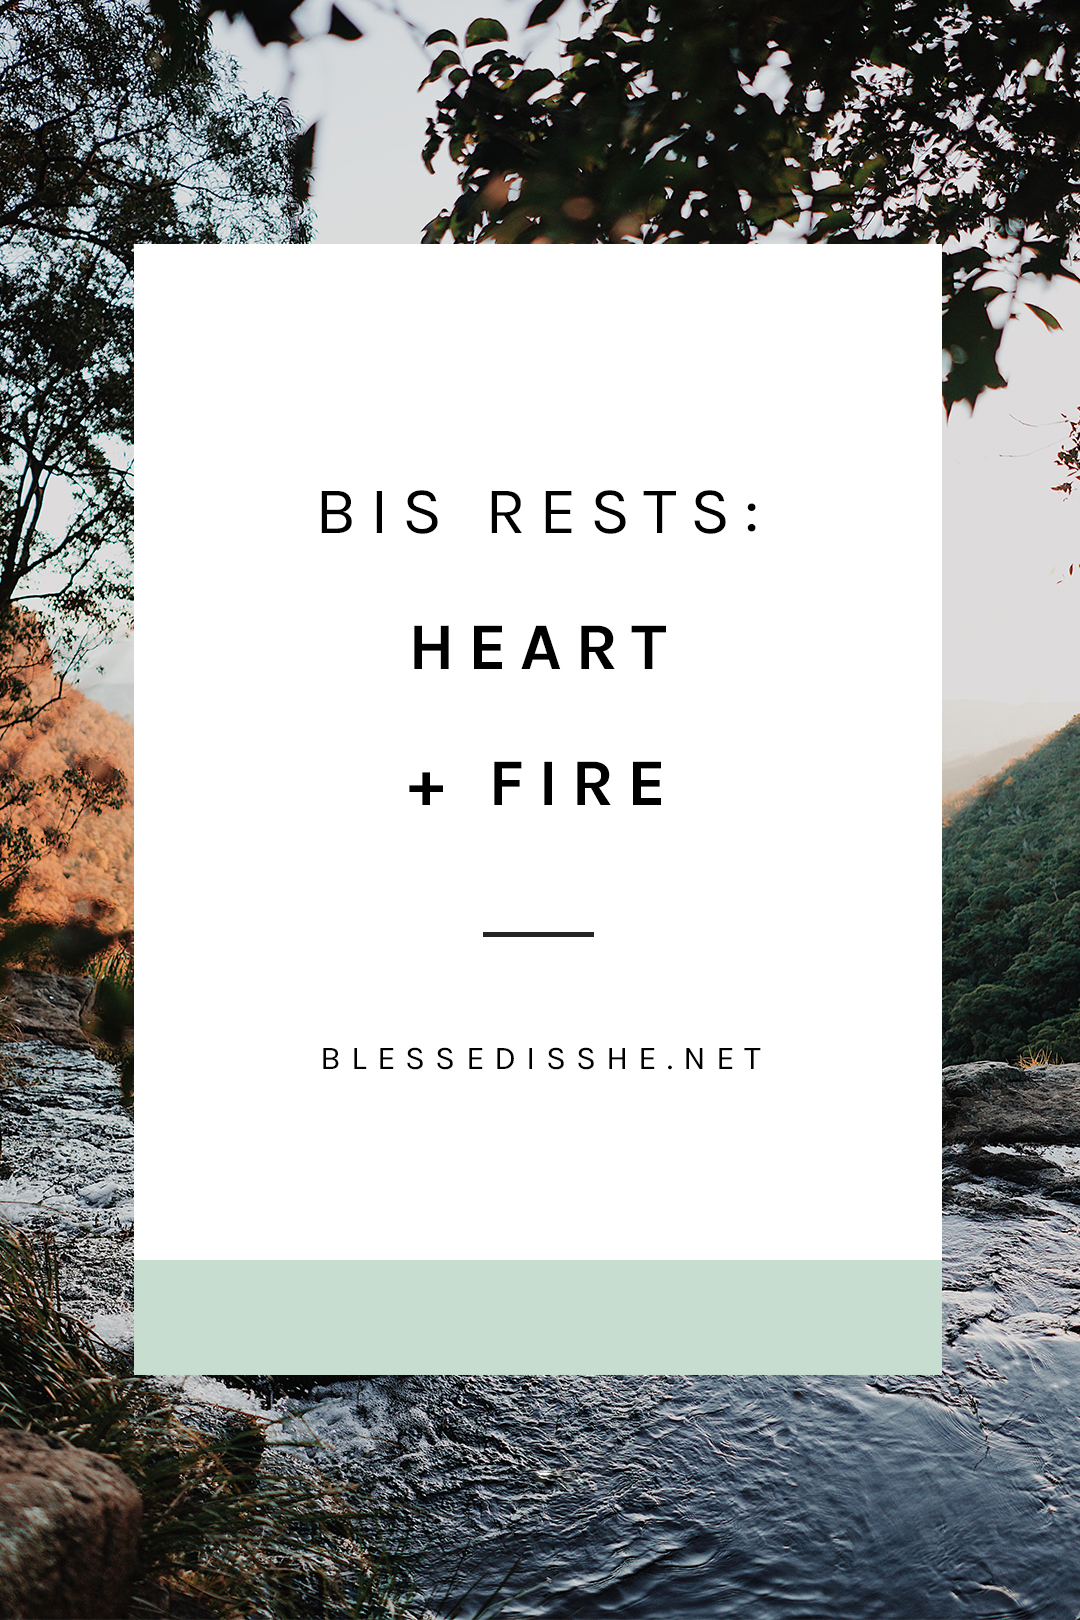 sunday reflection catholic bis rests Heart + Fire